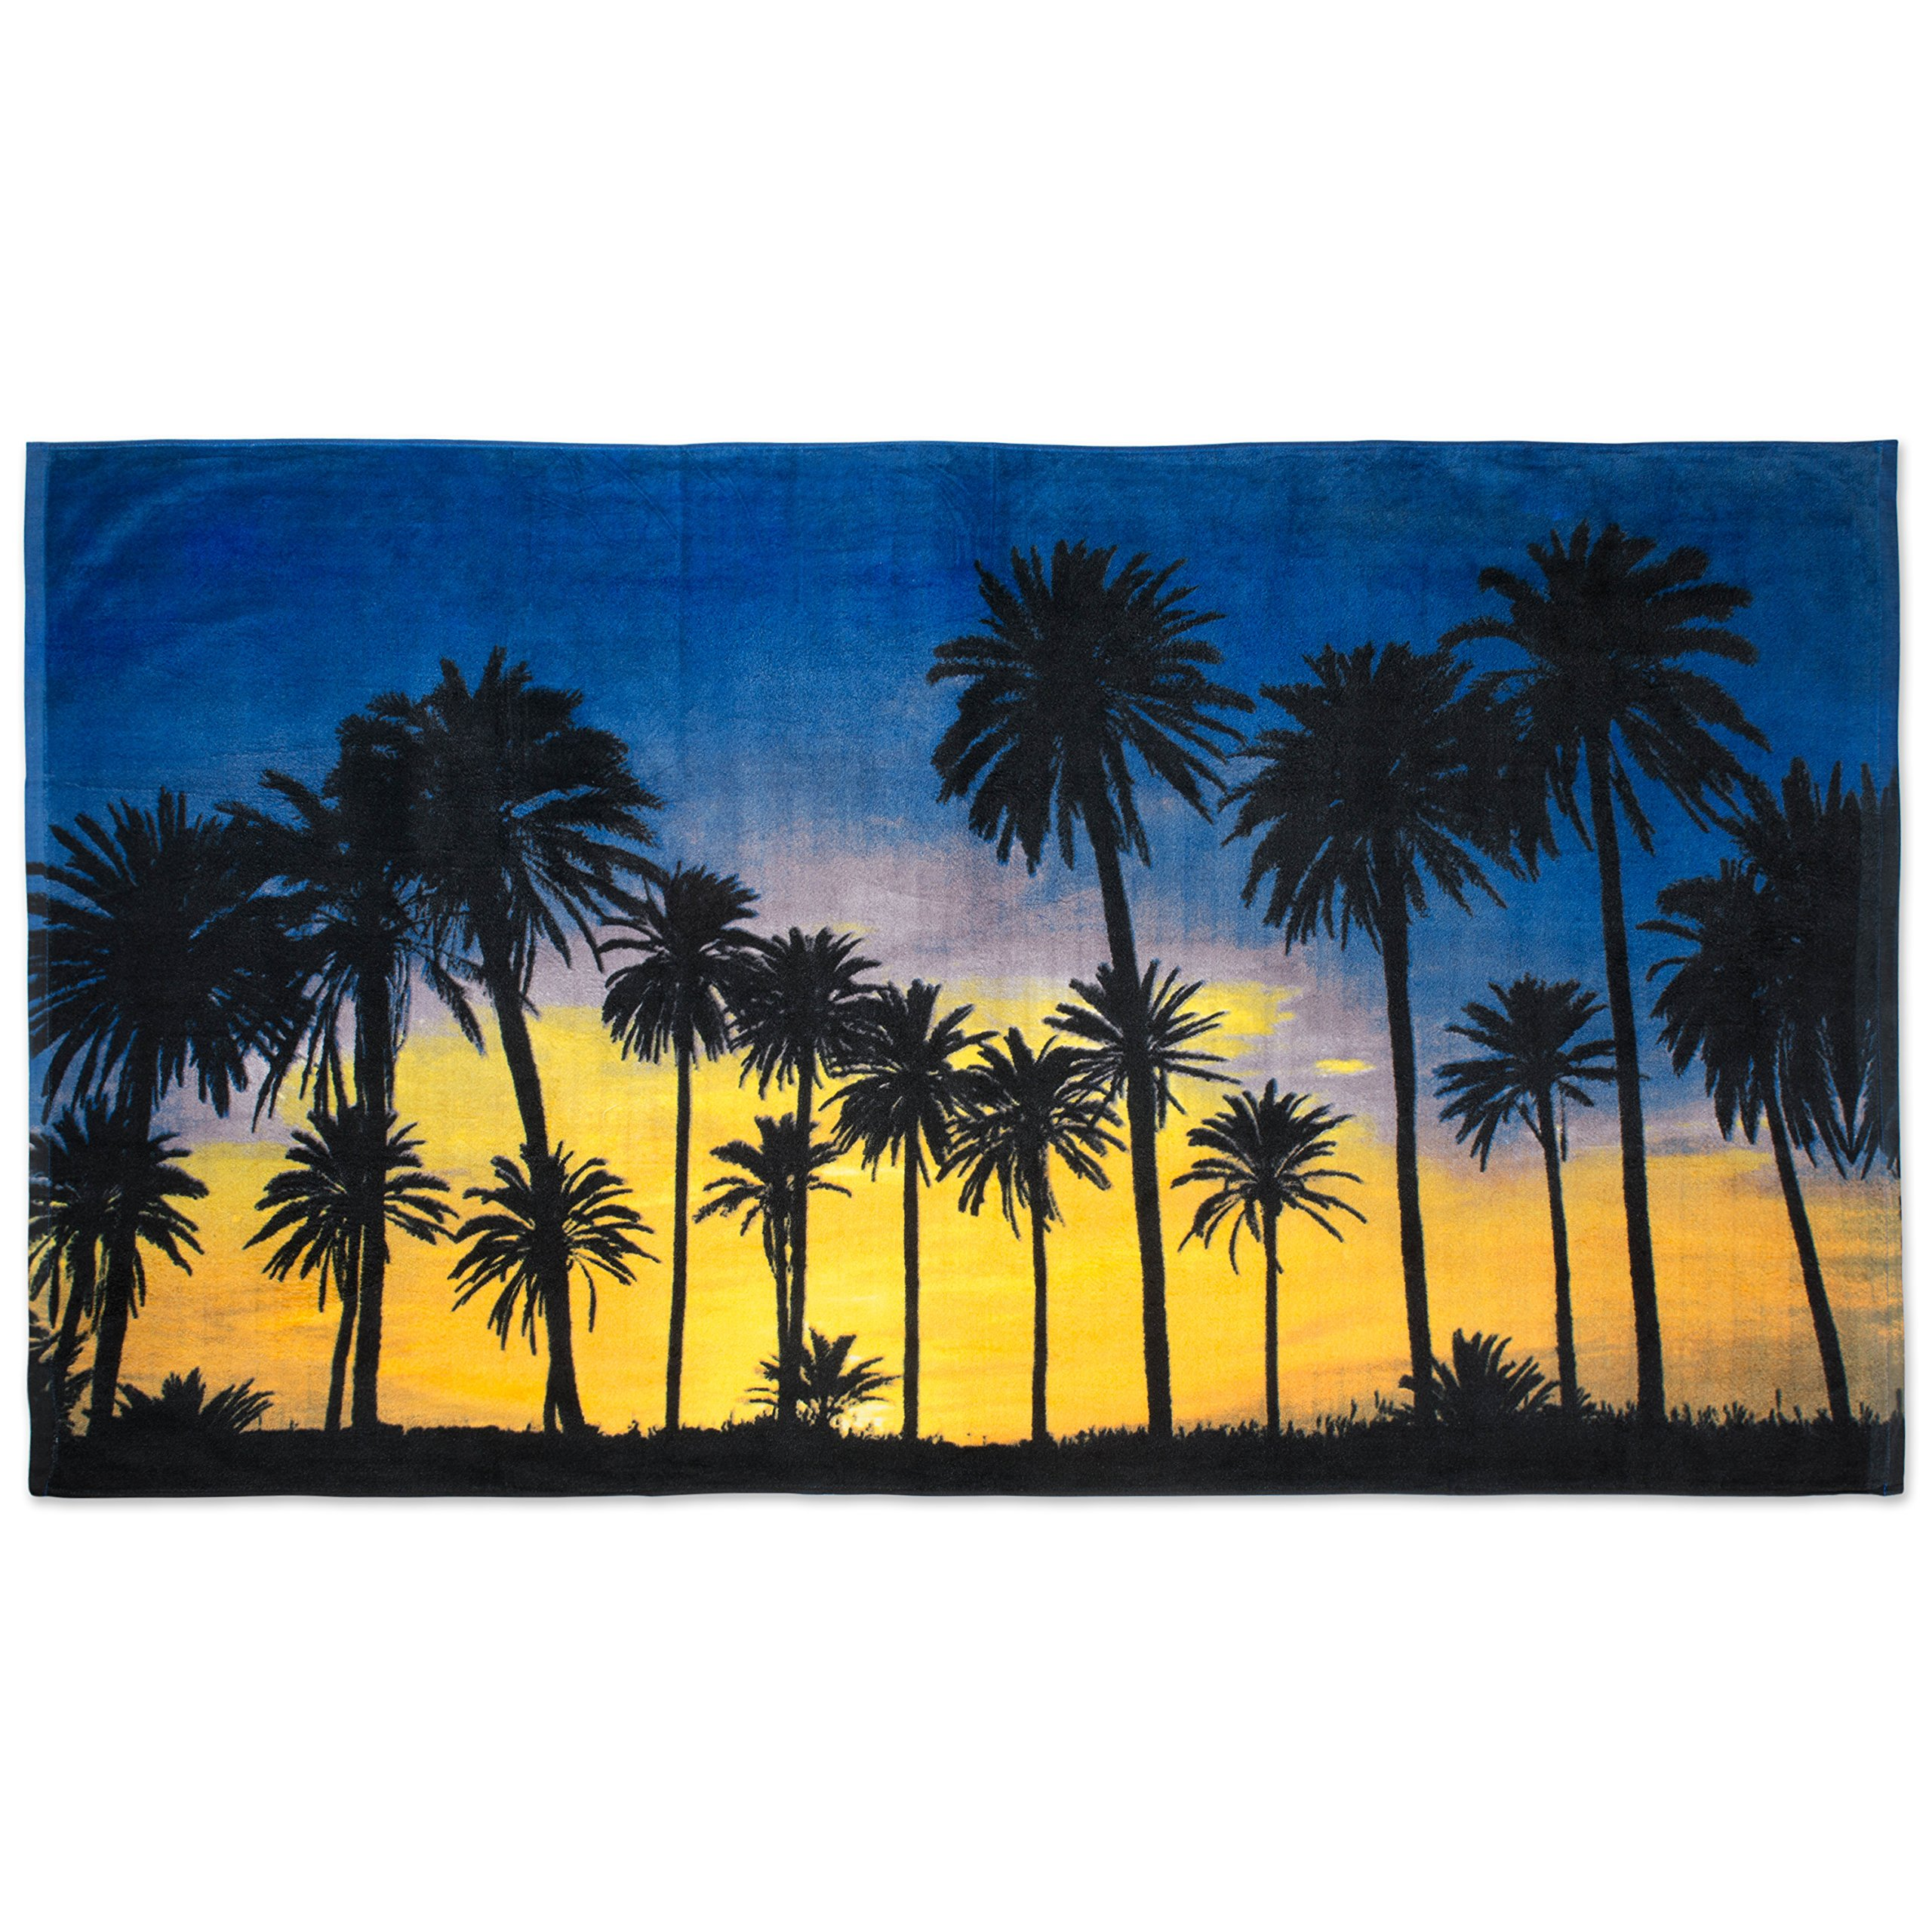 Oversized Extra-Large Terry Cotton Beach Towe, 40x70'', Soft Absorbent and Dry Fast for Swimming Pool, Beach and Spa-Palm Trees Sunset